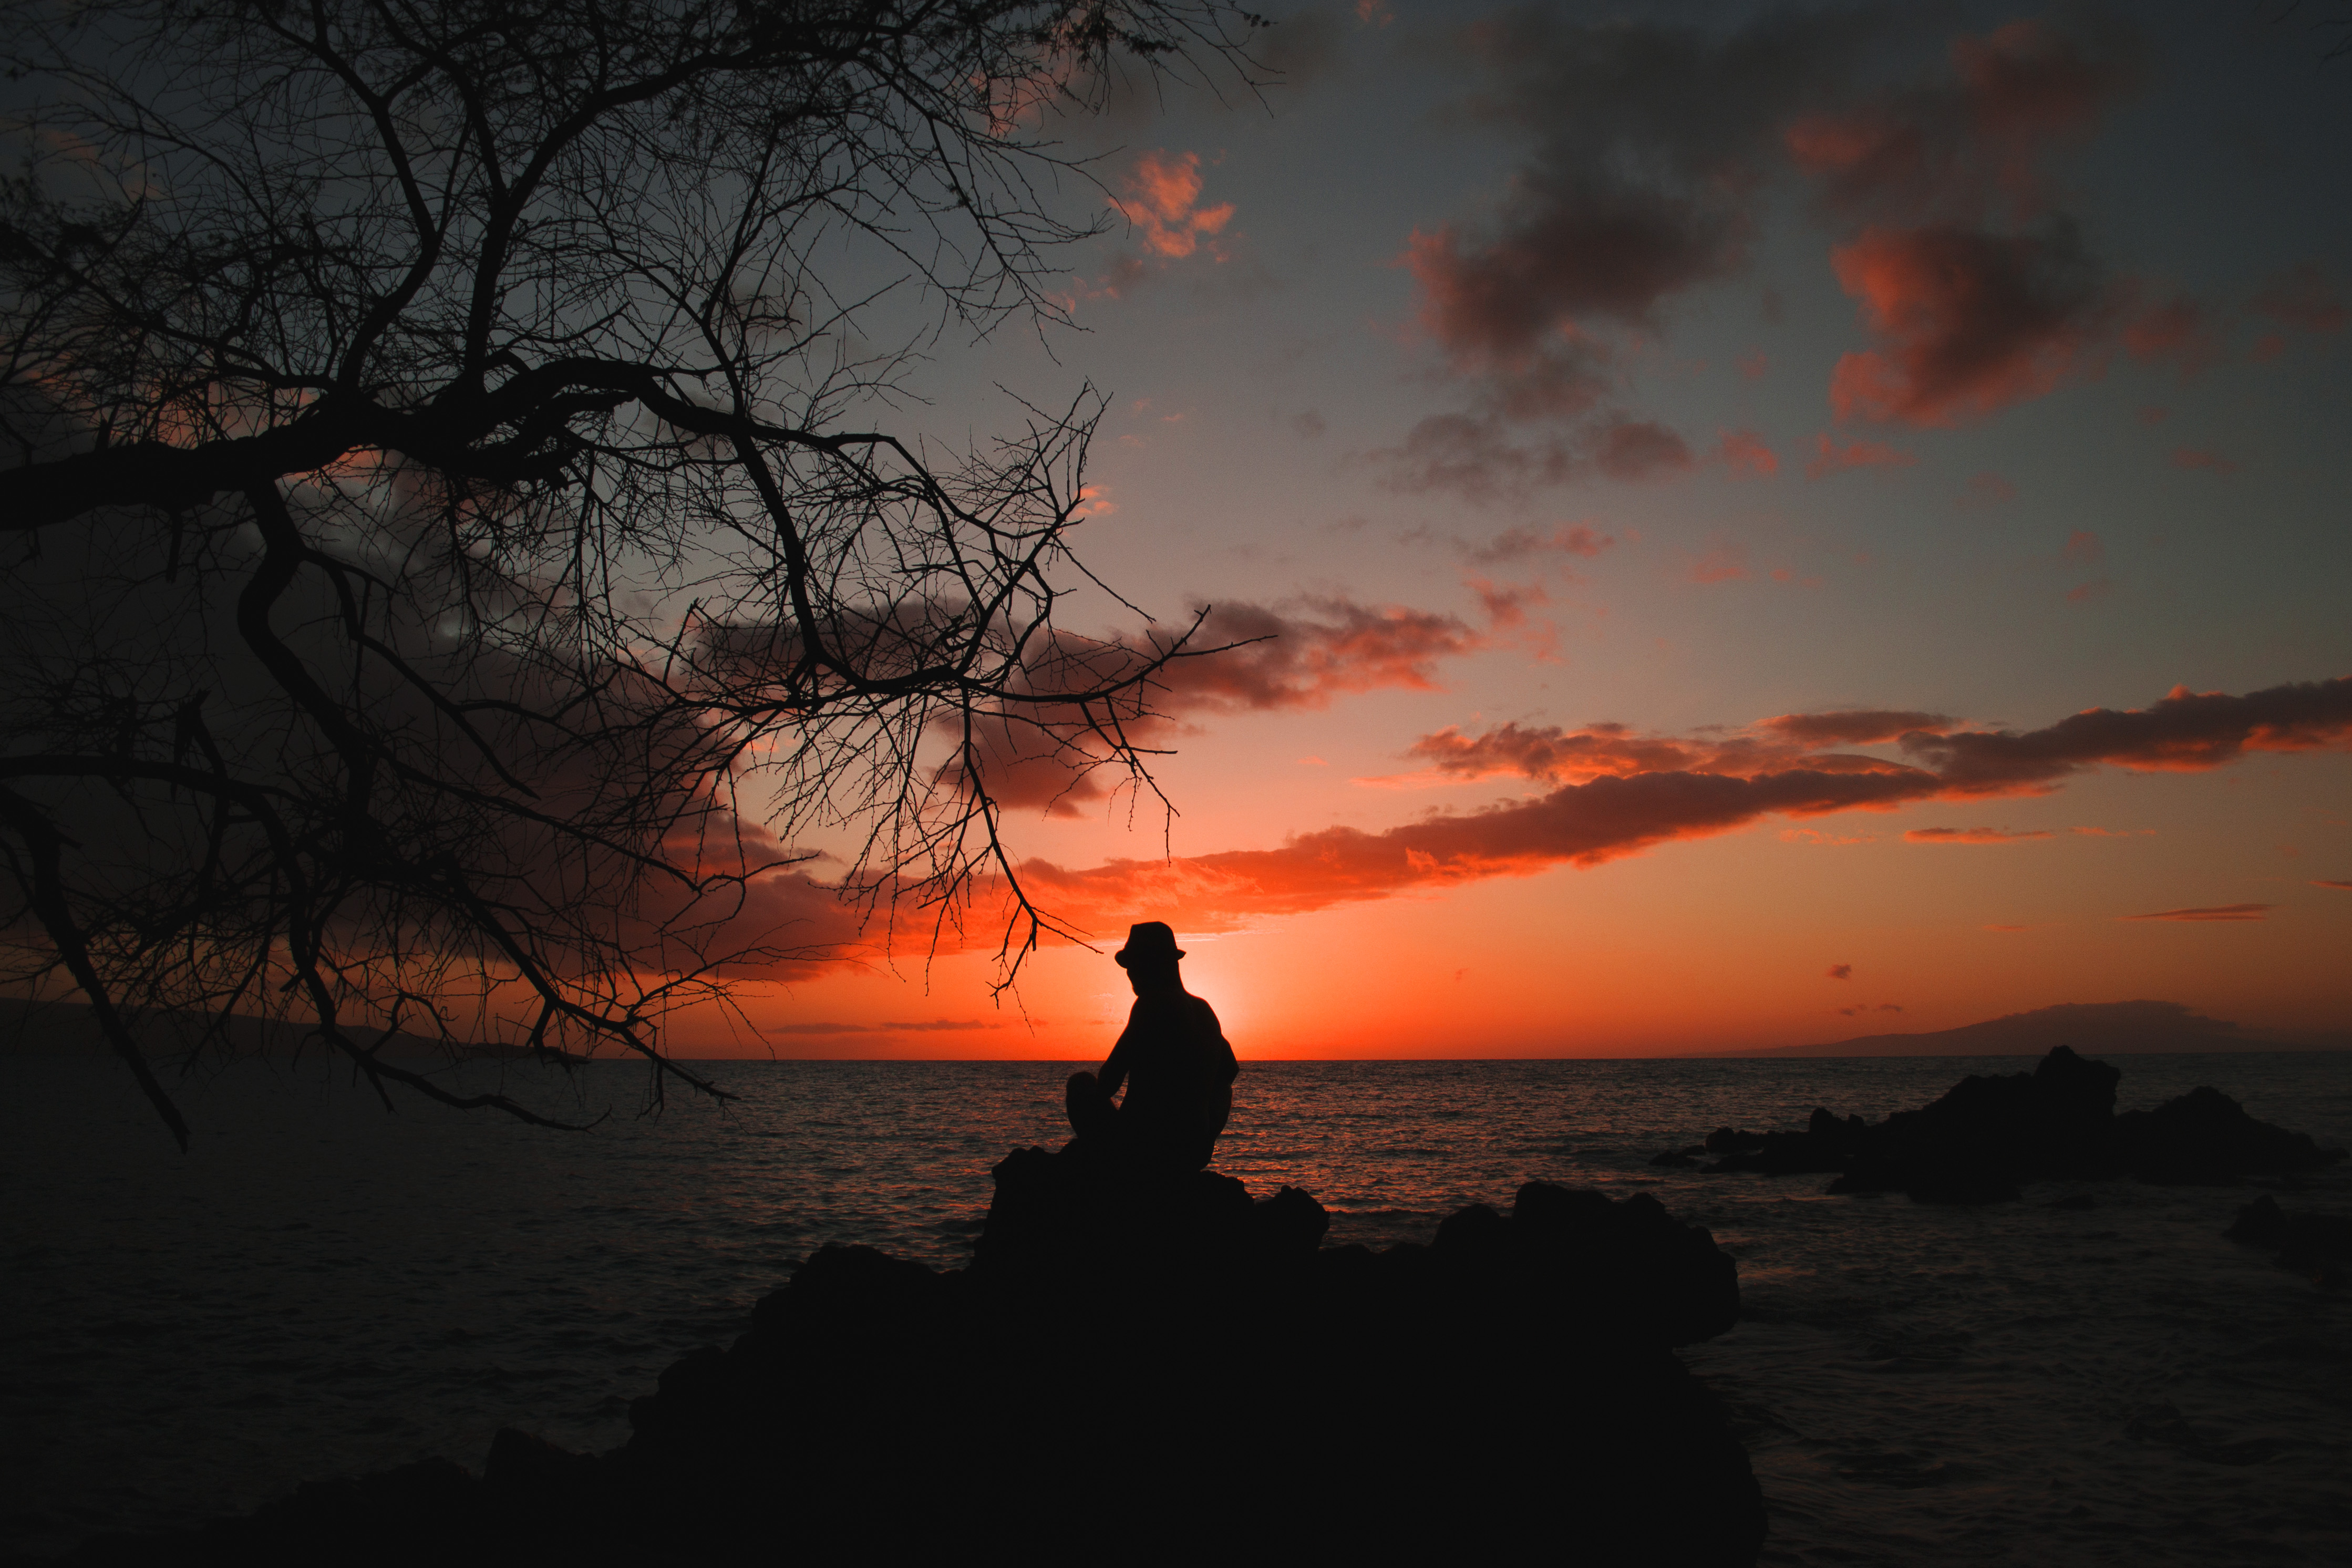 Black Wallpaper 4k Rear View Of Silhouette Man Against Sky During Sunset